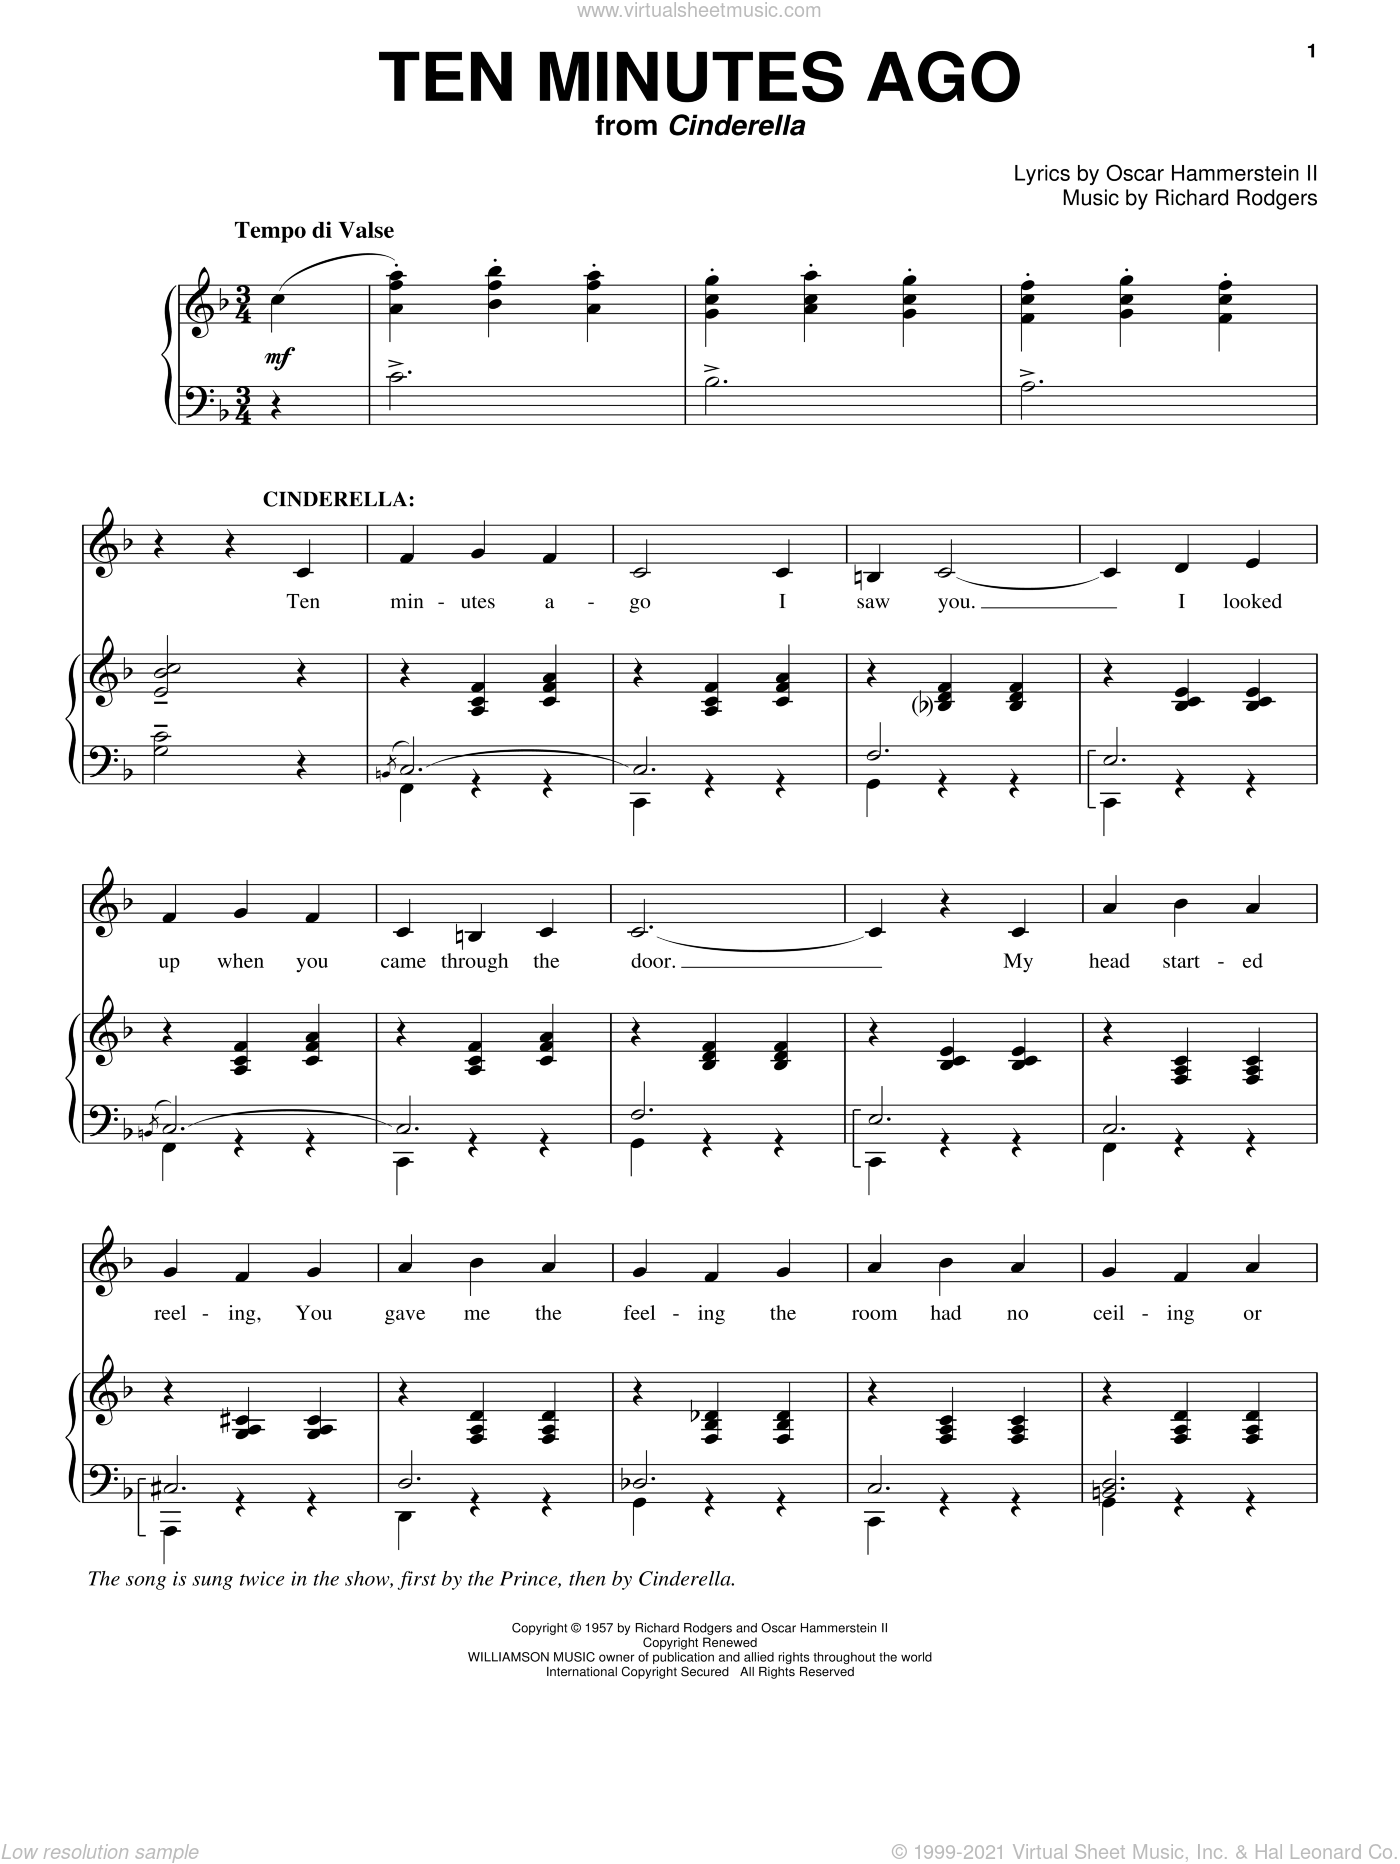 Ten Minutes Ago sheet music for voice and piano by Richard Rodgers